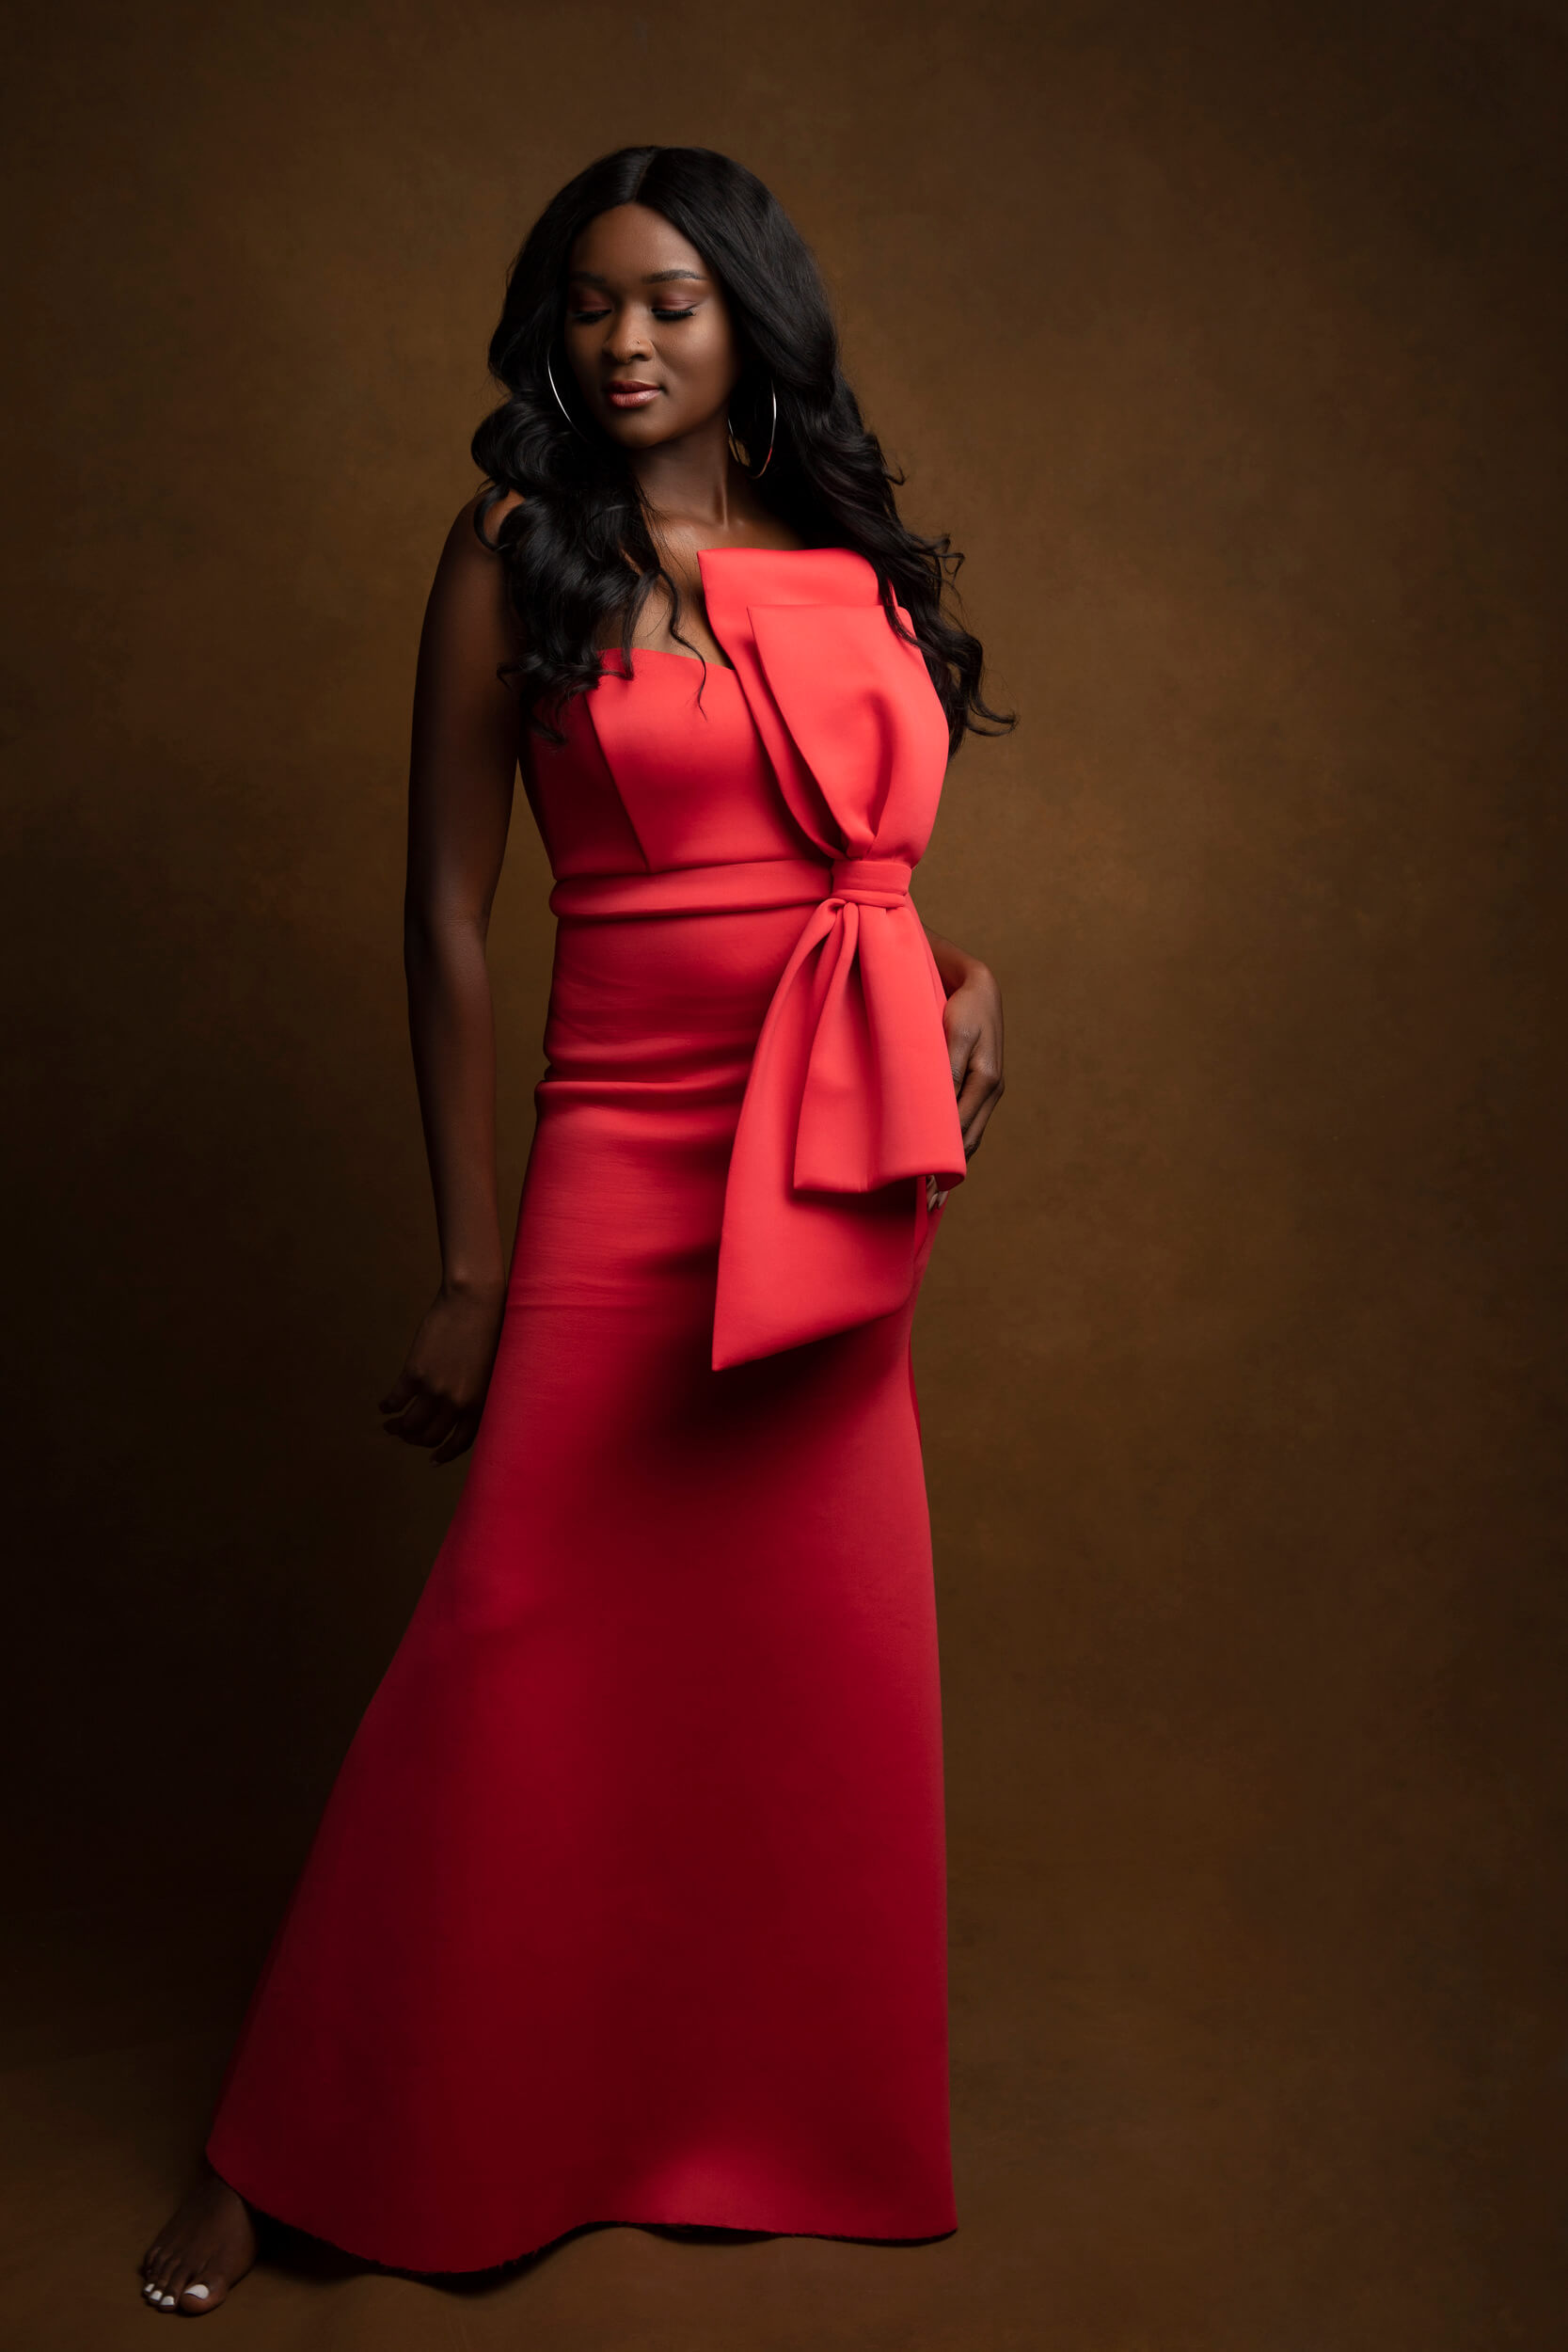 Glamour-Red-dress-Studio-Photography